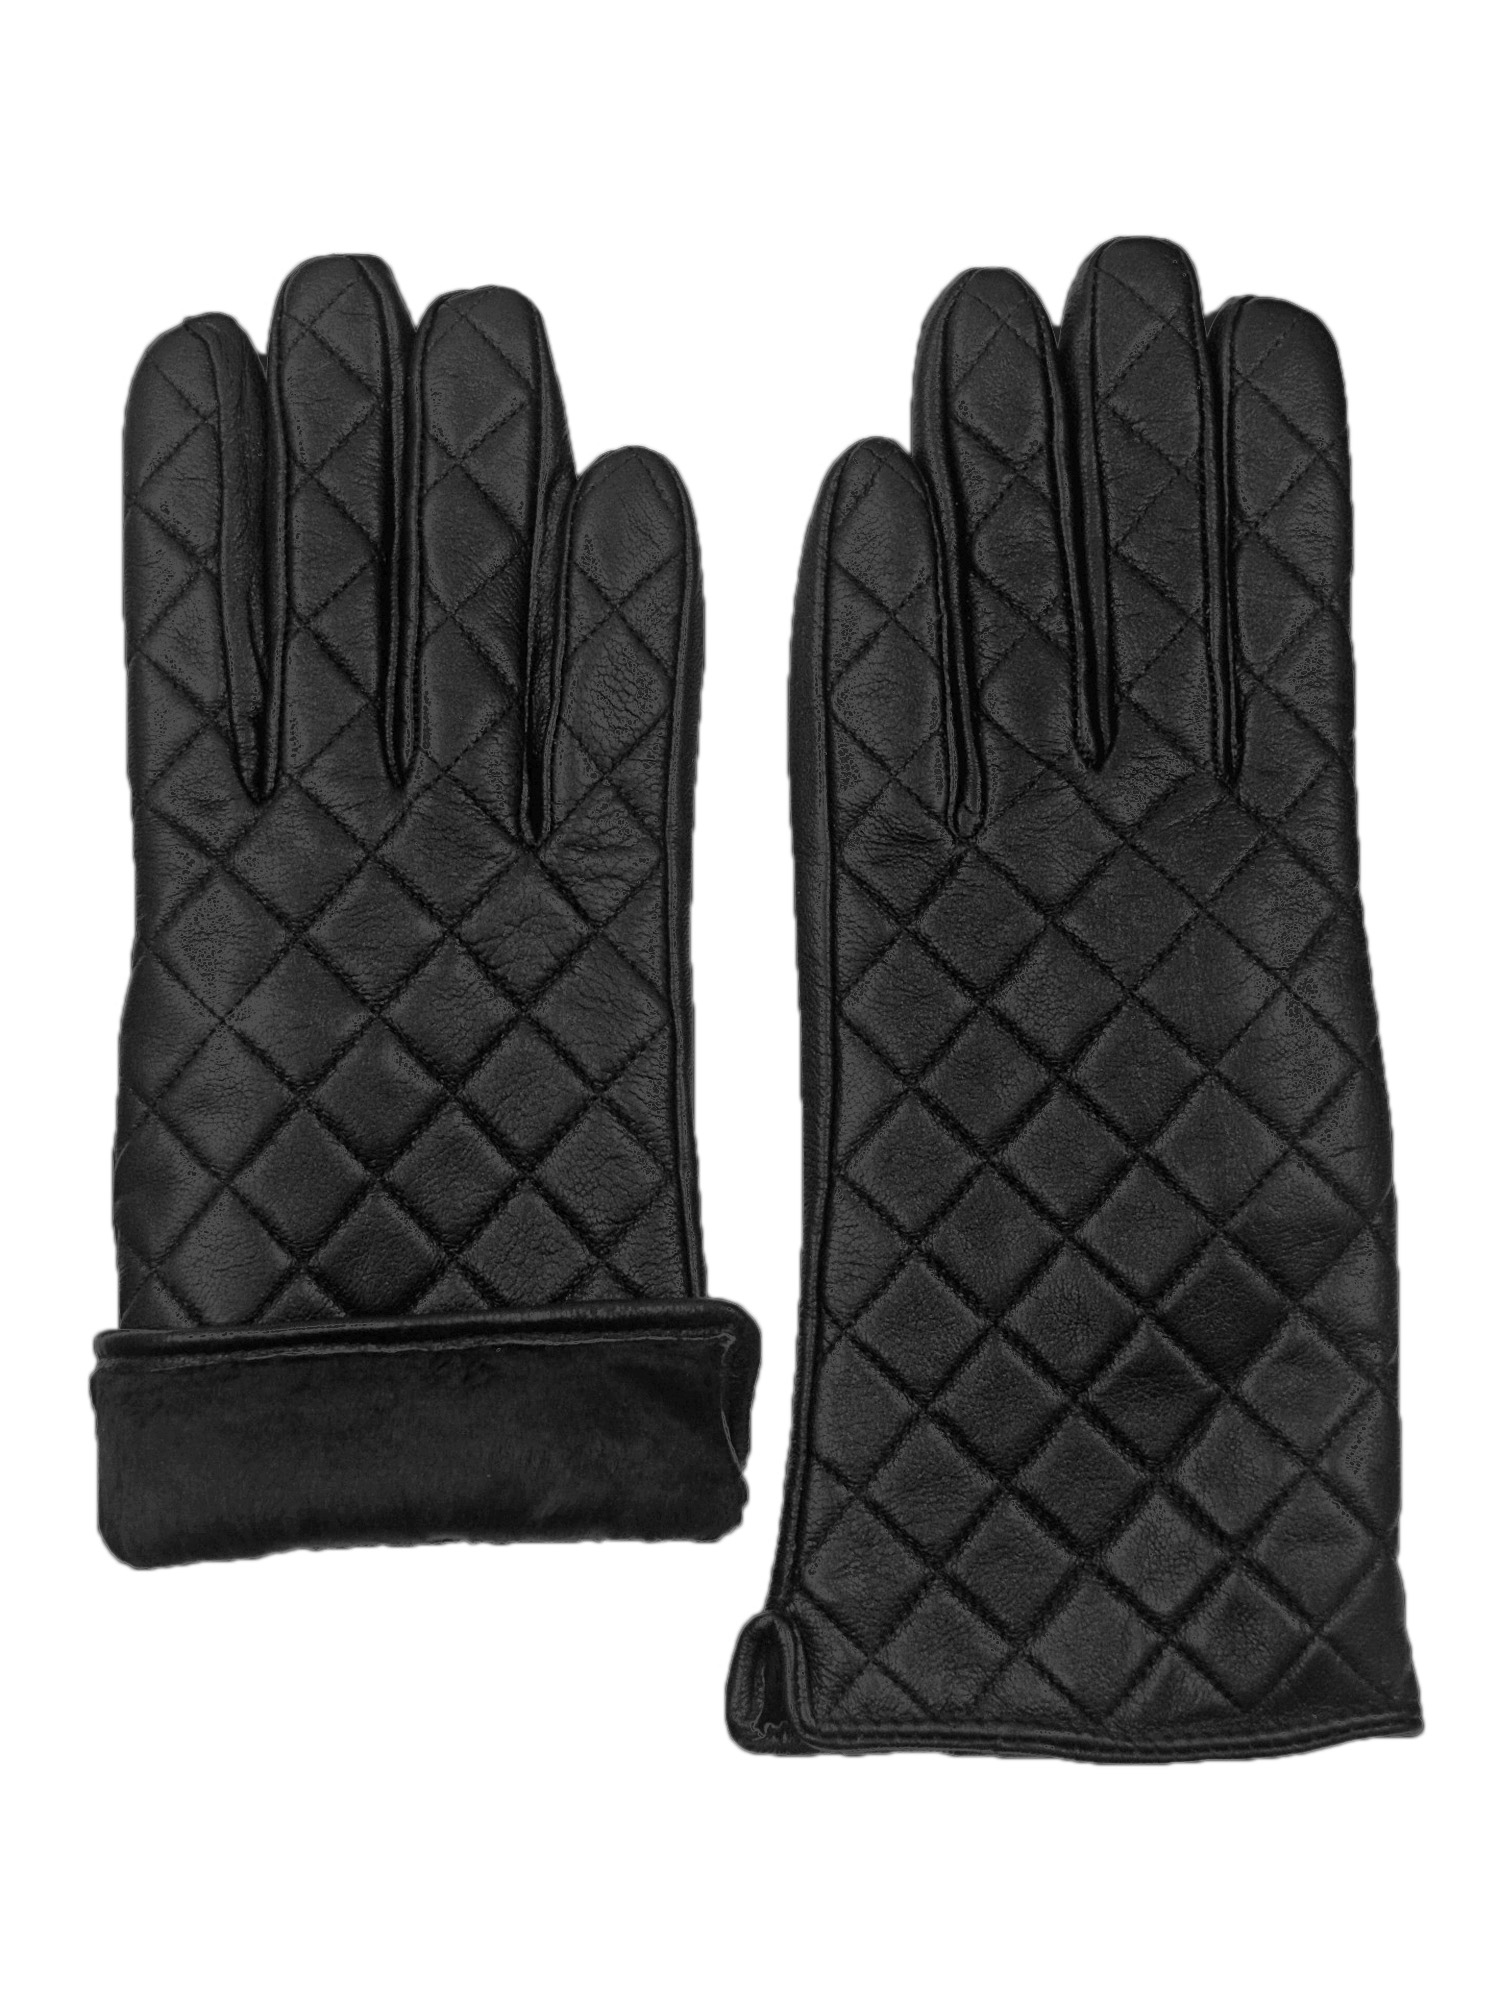 Giromy-Samoni-Womens-Warm-Winter-Leather-Quilted-Dress-Driving-Gloves-Black thumbnail 6